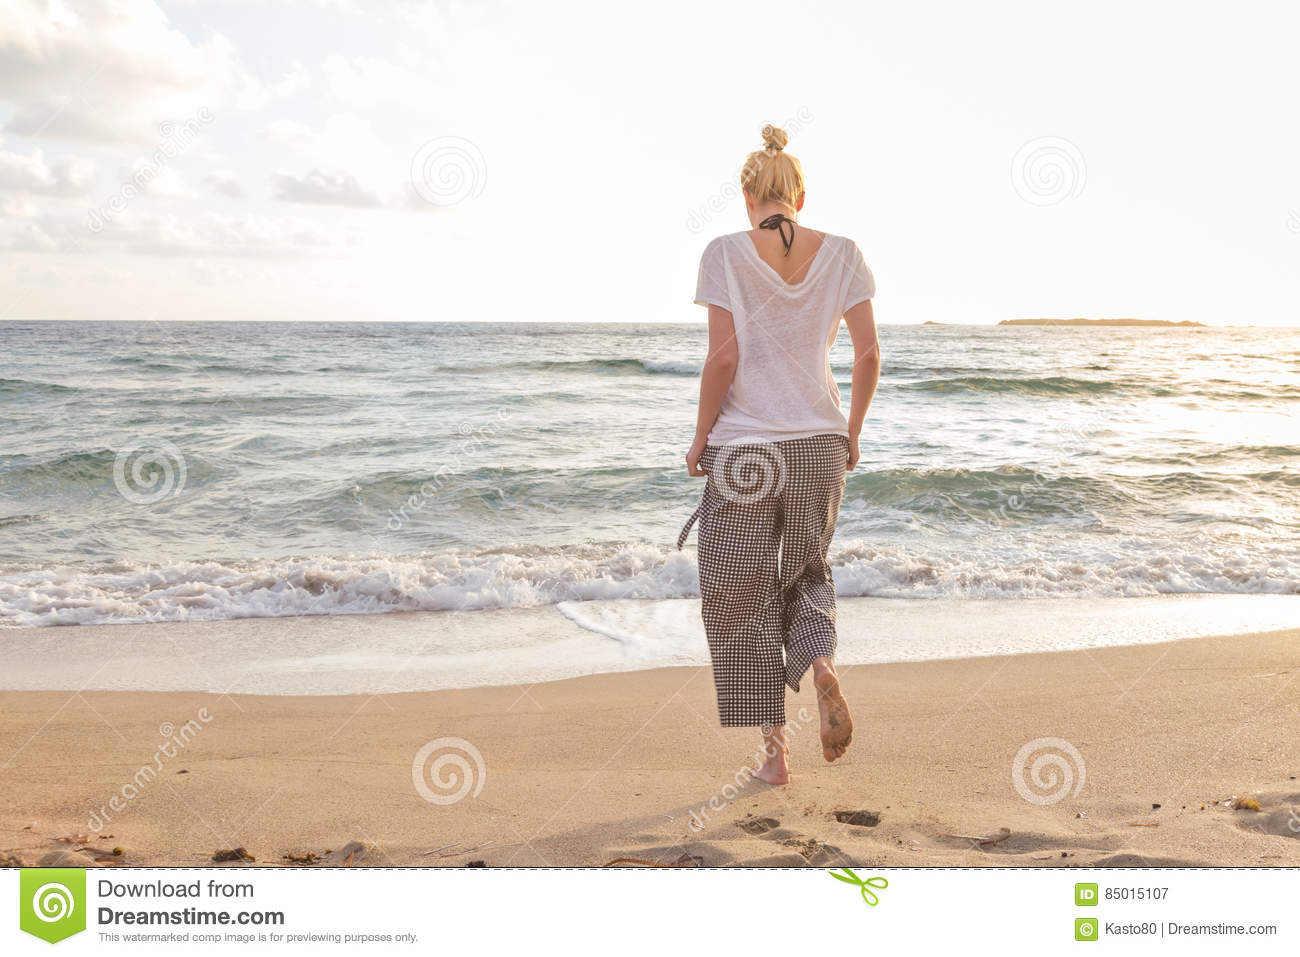 Woman Walking On Sand Beach At Golden Hour Stock Image - Image of ... b4b4cd2fdc6